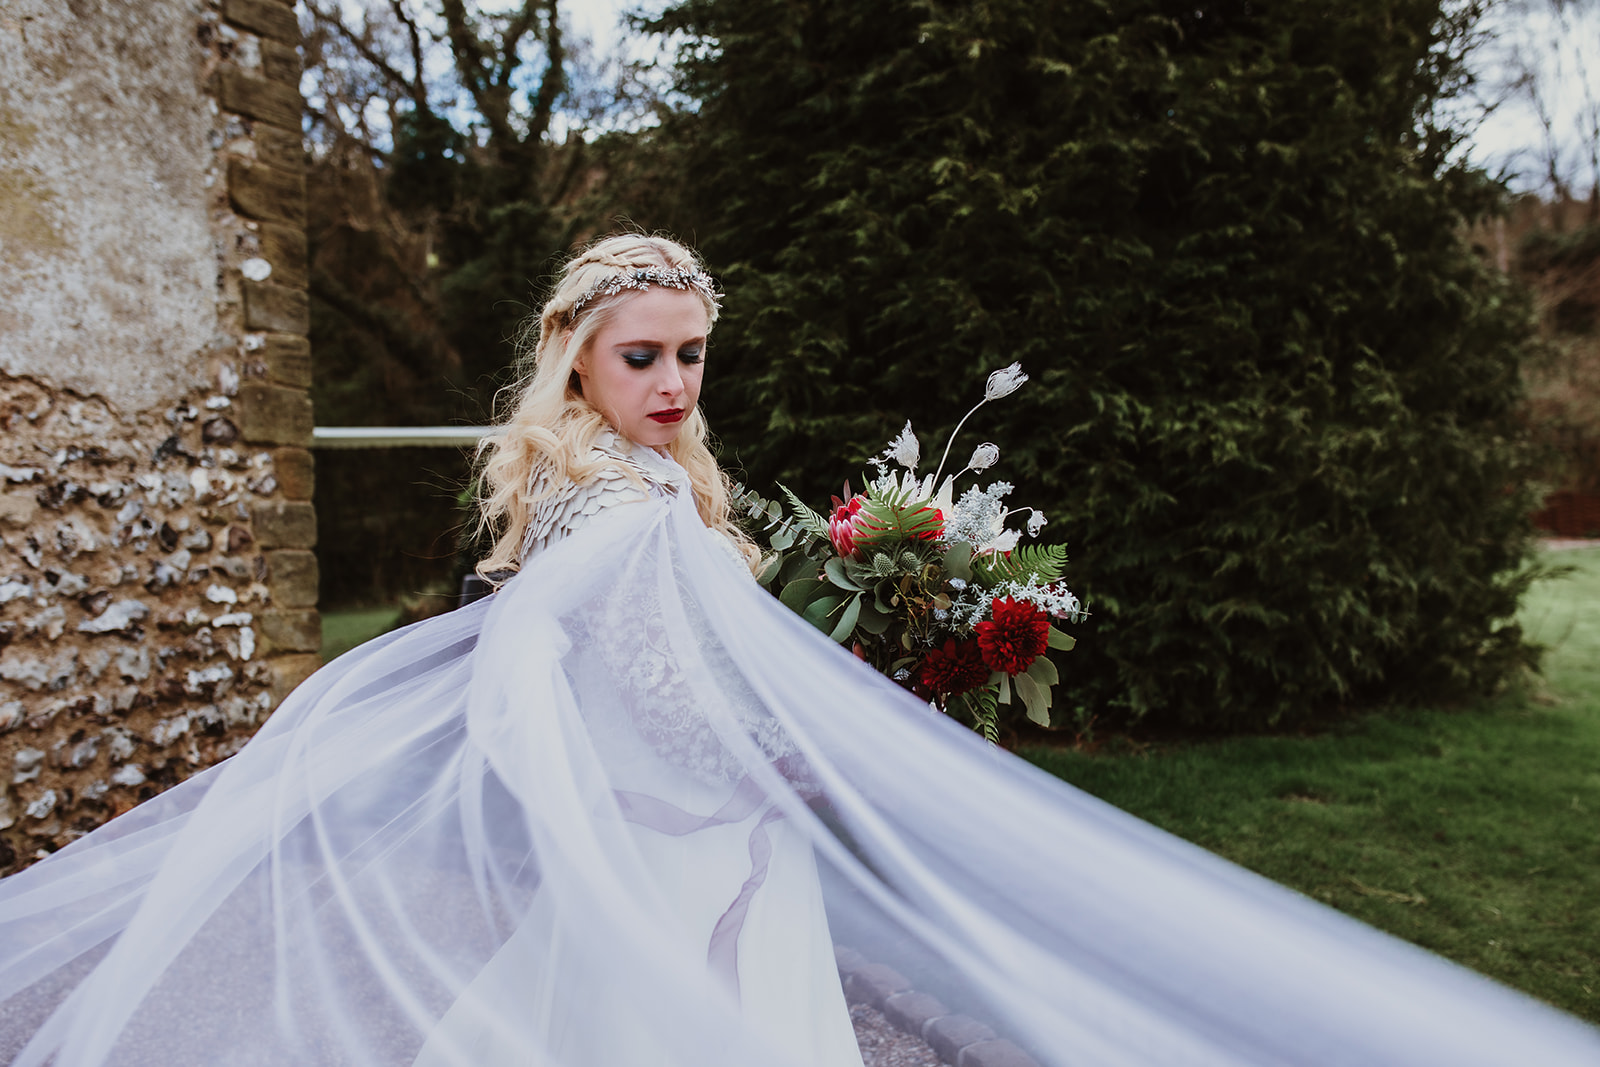 Game Of Thrones Wedding- Tom Jeavons Photography- Unconventional Wedding- Fantasy Wedding- Themed Wedding- bride twirling in dress